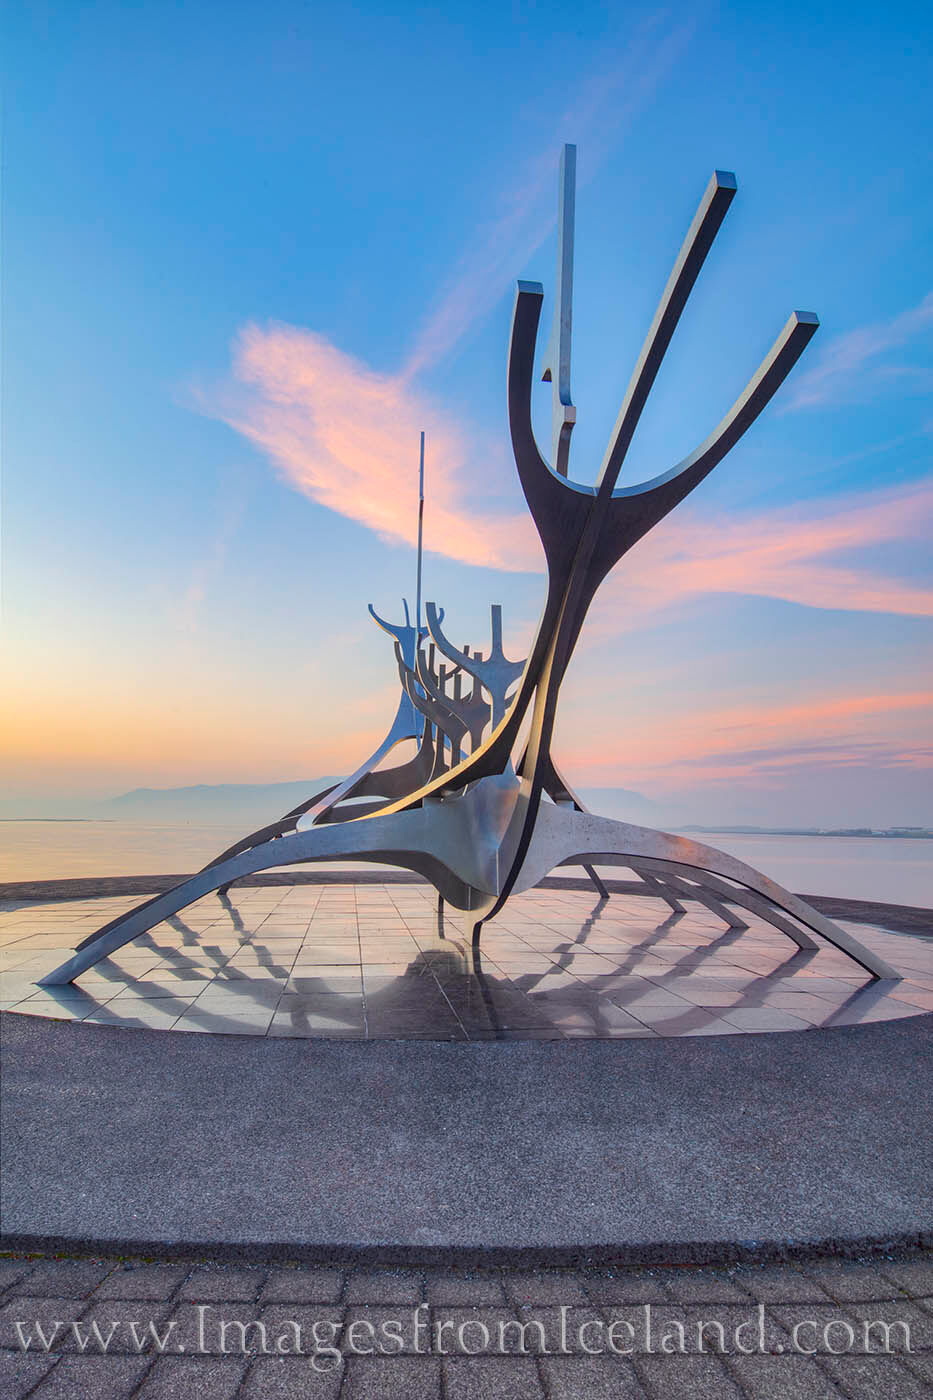 Created by Jón Gunnar Árnason, the Sun Voyager brings hope for exploration and humanity. This sculpture rests at the waterfront...